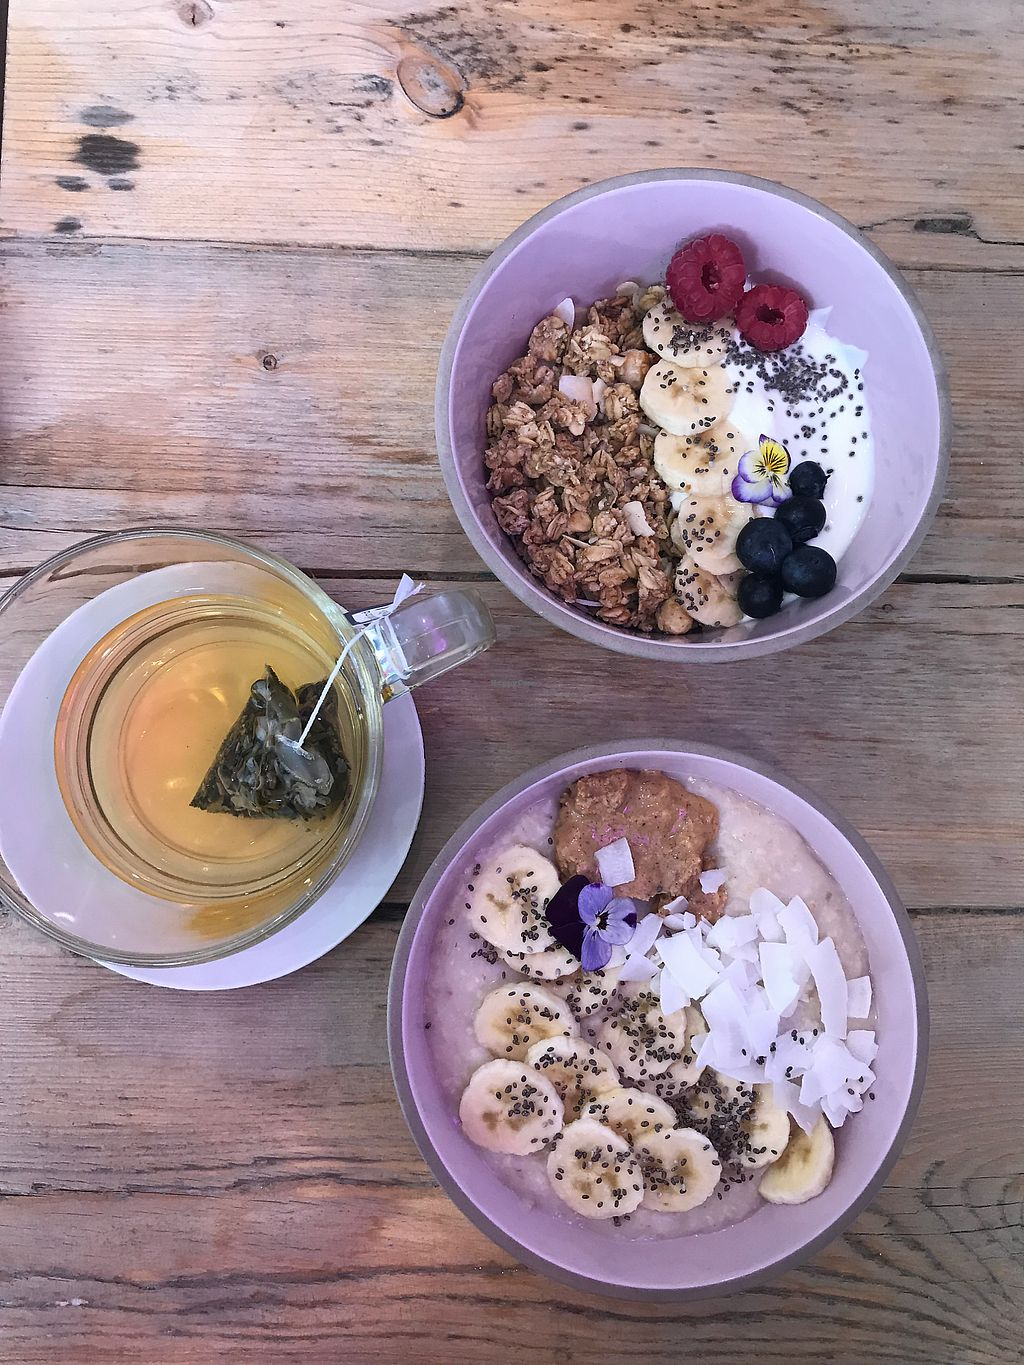 """Photo of Pom Kitchen  by <a href=""""/members/profile/Melissaj1990"""">Melissaj1990</a> <br/>breakfast bowls <br/> July 16, 2017  - <a href='/contact/abuse/image/92607/281194'>Report</a>"""